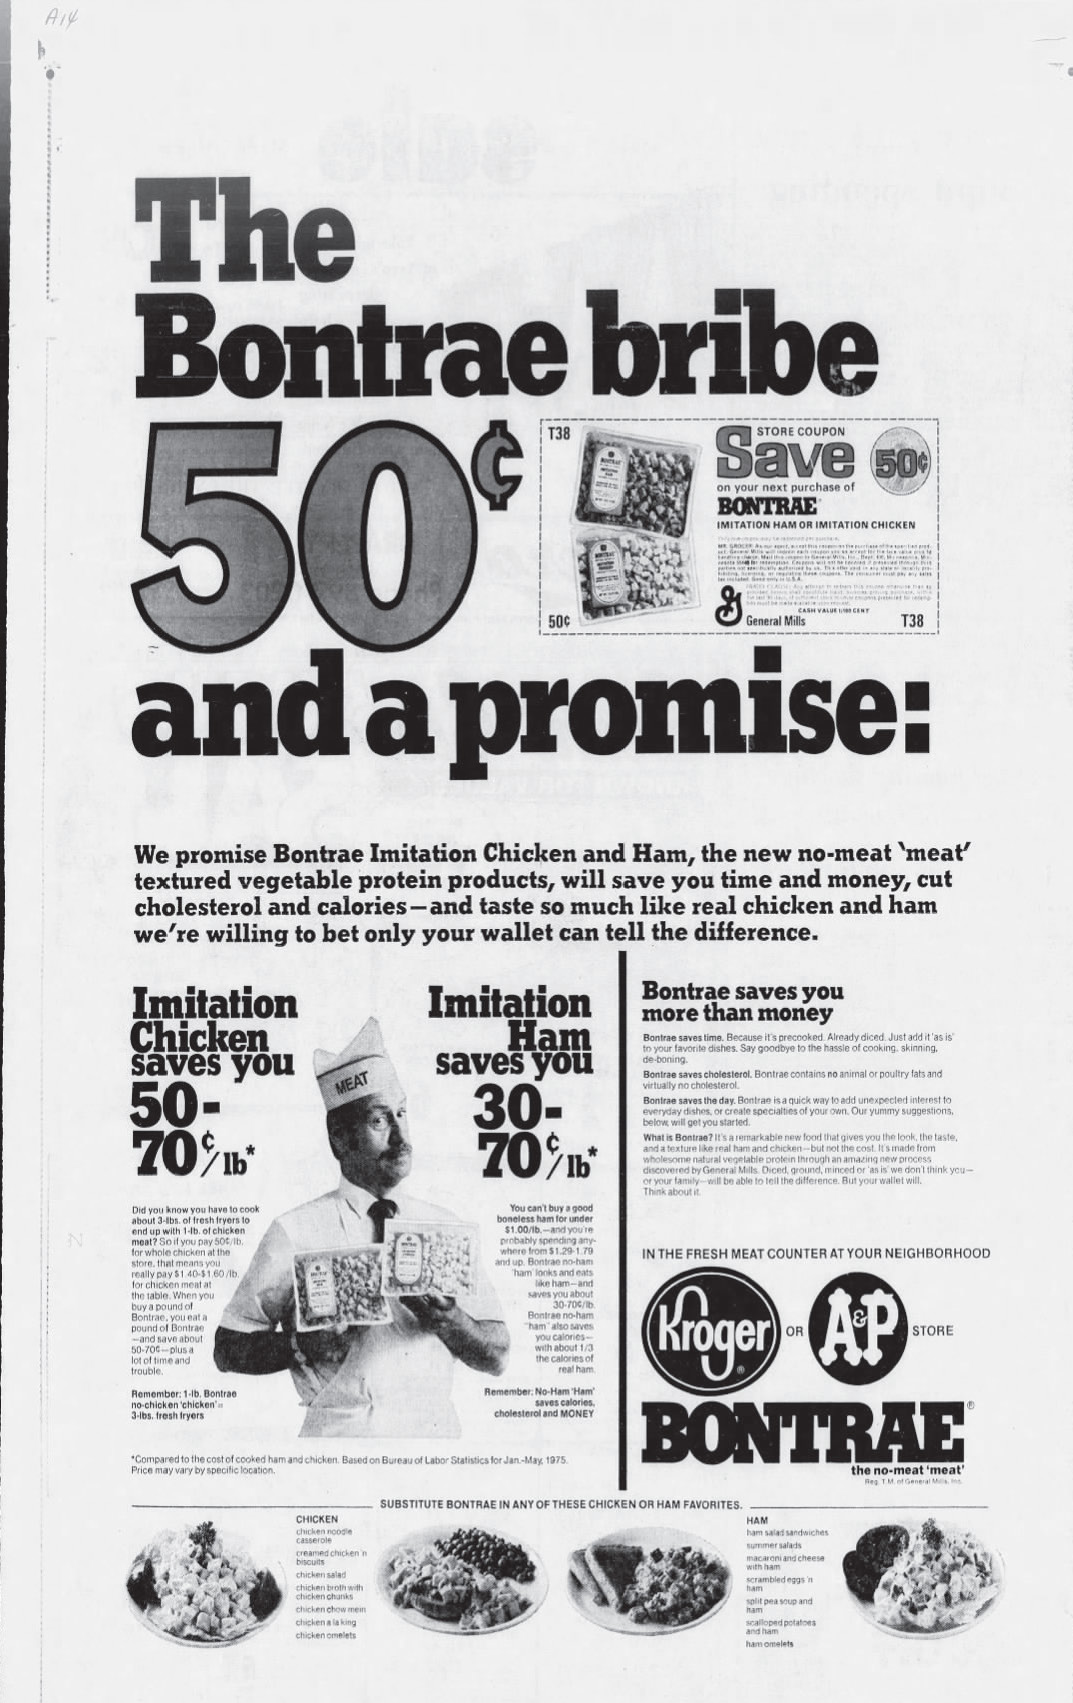 "Advertisement and coupon for Bontrae from  Louisville (KY) Courier-Journal , August 14, 1975. [Click to expand.] The advertisement emphasizes the savings, convenience, and health benefits that made Bontrae a better choice than actual meat, while promising consumers that they would not be sacrificing flavor. ""They taste so much like real chicken and ham, we're willing to bet only your wallet can tell the difference."""